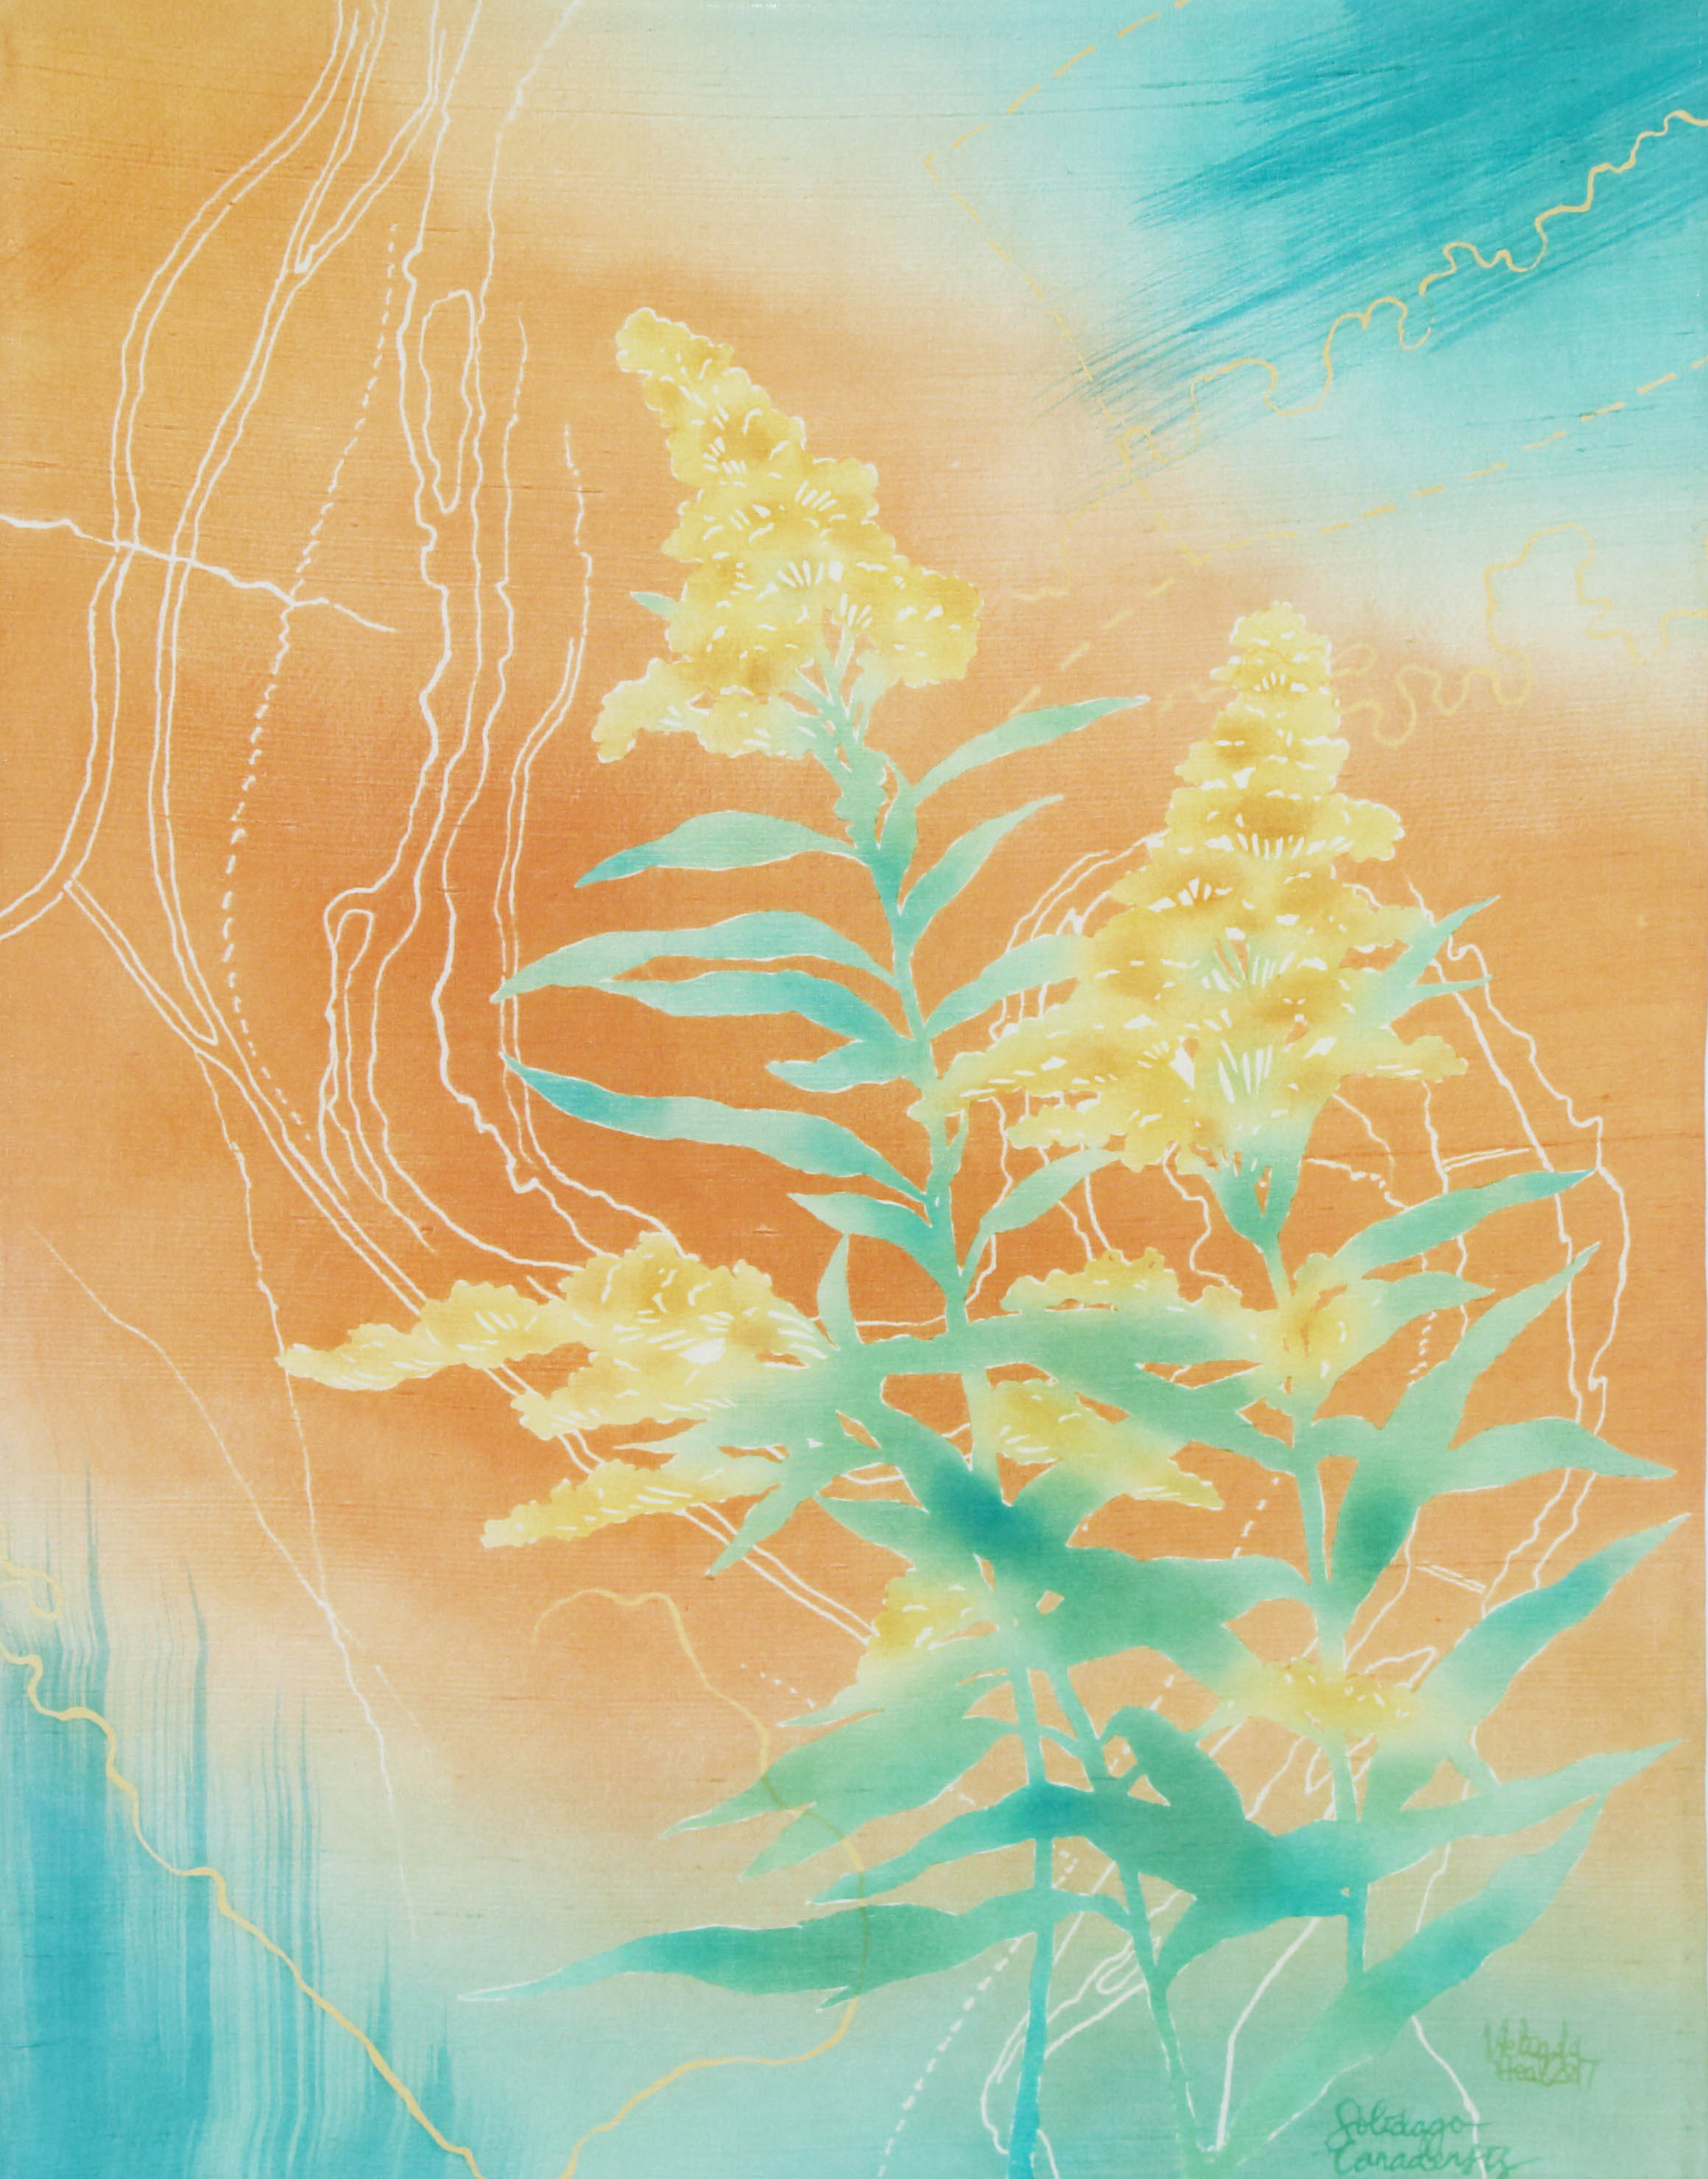 Goldenrod - My Weeds are Your Weeds Series - katazome and yuzen on silk dupion, 2017